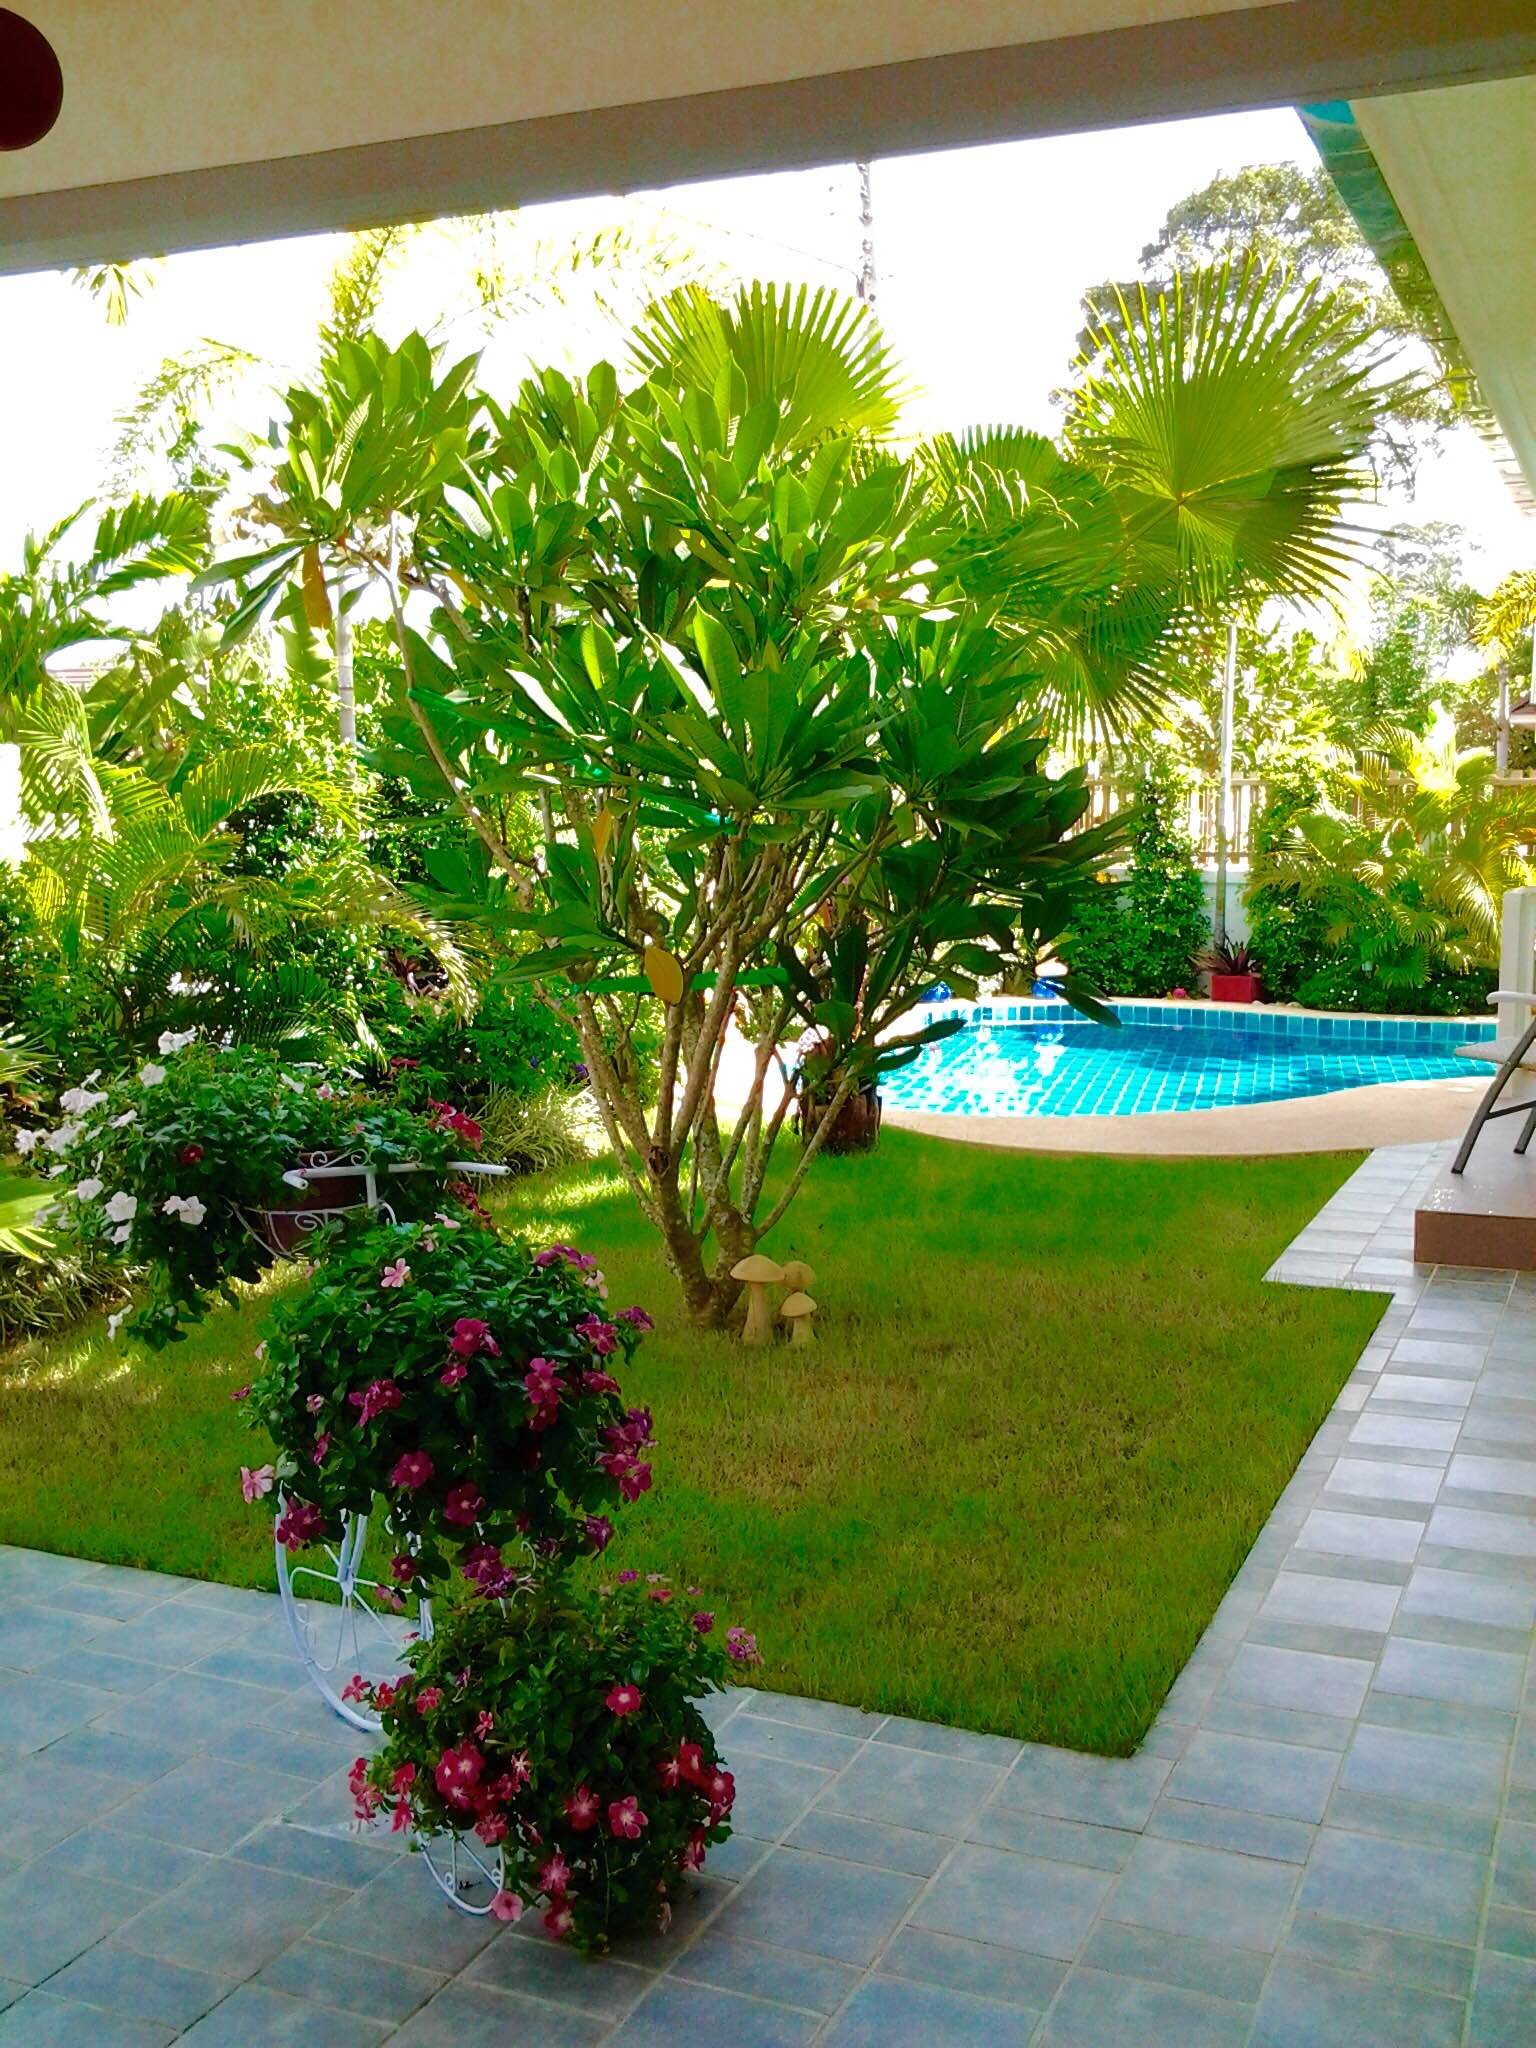 VisionQuest Thailand Property Agency's Bang Saray Beach House for sale at a low price!!! 23